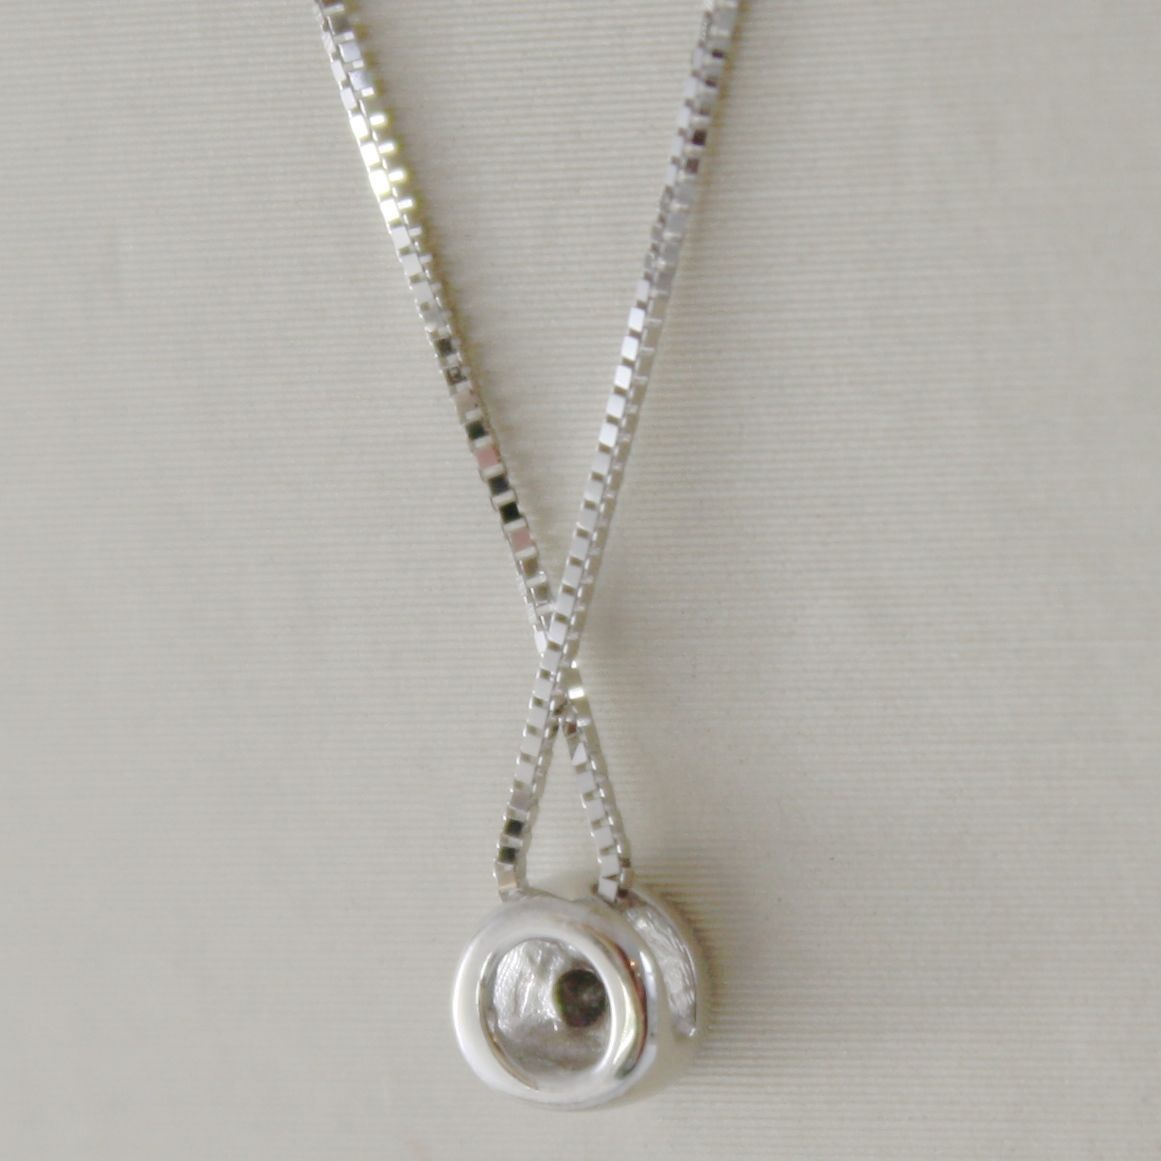 18K WHITE GOLD MINI NECKLACE WITH DIAMOND 0.04 CT, VENETIAN CHAIN MADE IN ITALY